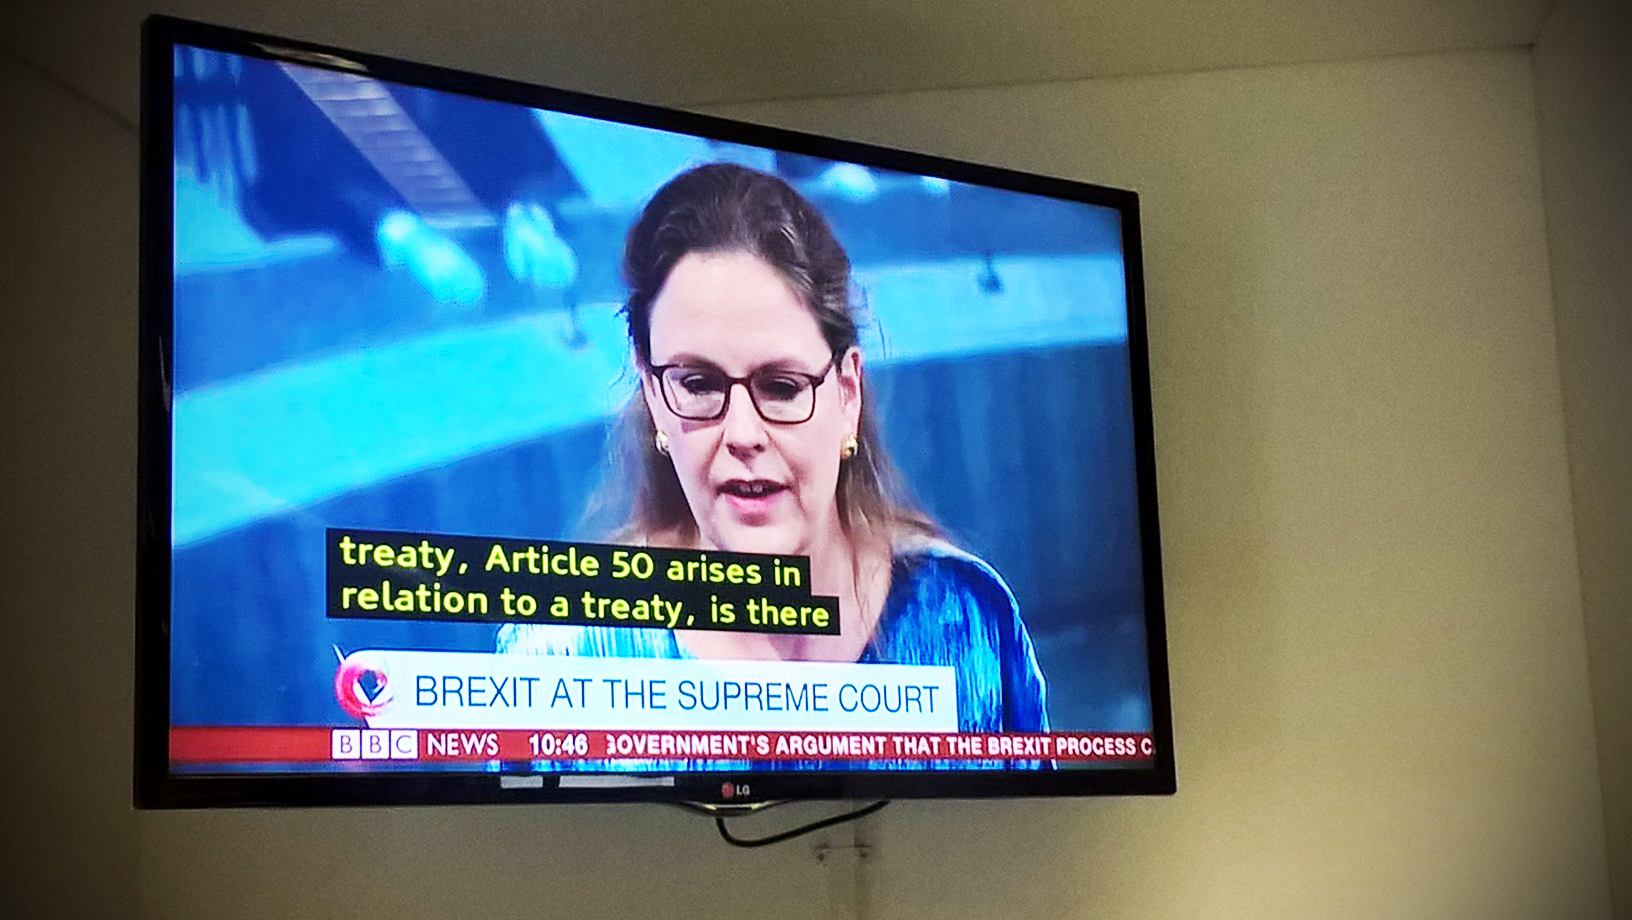 Chair of the Bar Chantal-Aimée-Doerries QC interviewed by the BBC on the Lord Chancellor's response to criticisms of the judiciary